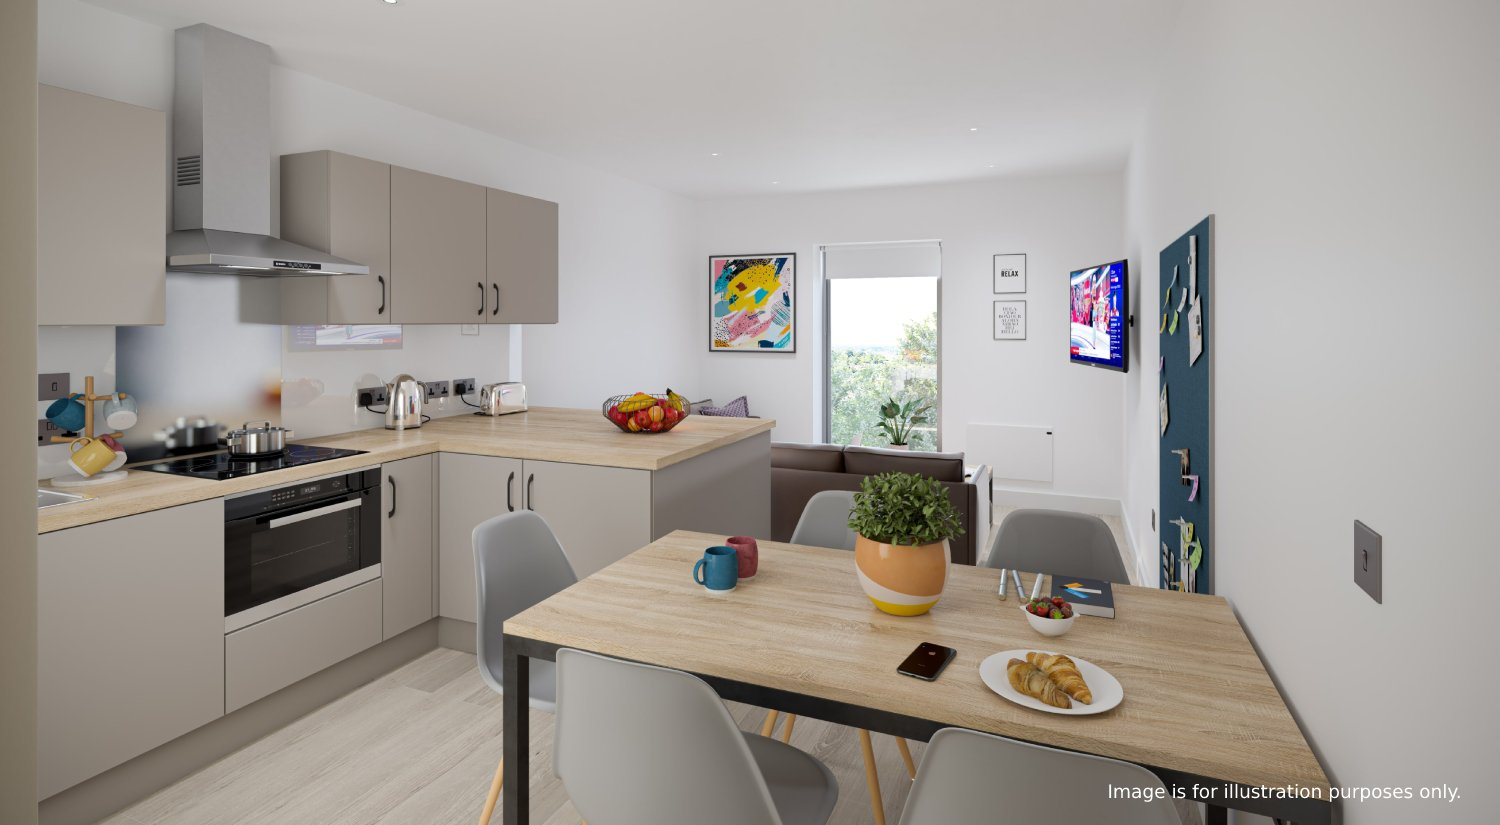 straits meadow luxury student accommodation kitchen 2